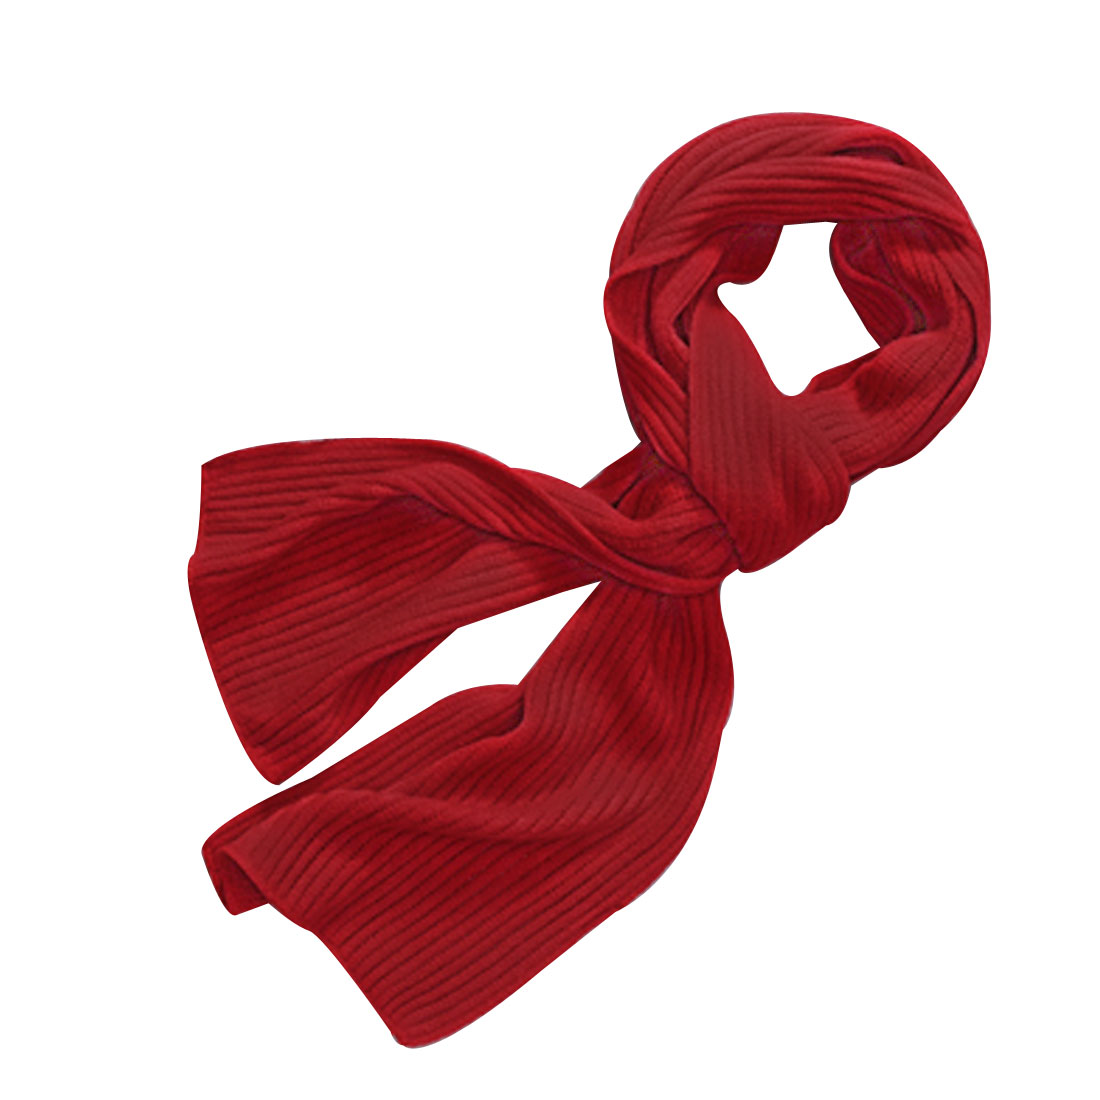 "Men Red Fashion Arcylic 11.8"" Width Crinkled Texture Casual Warm Wrap Scarf"